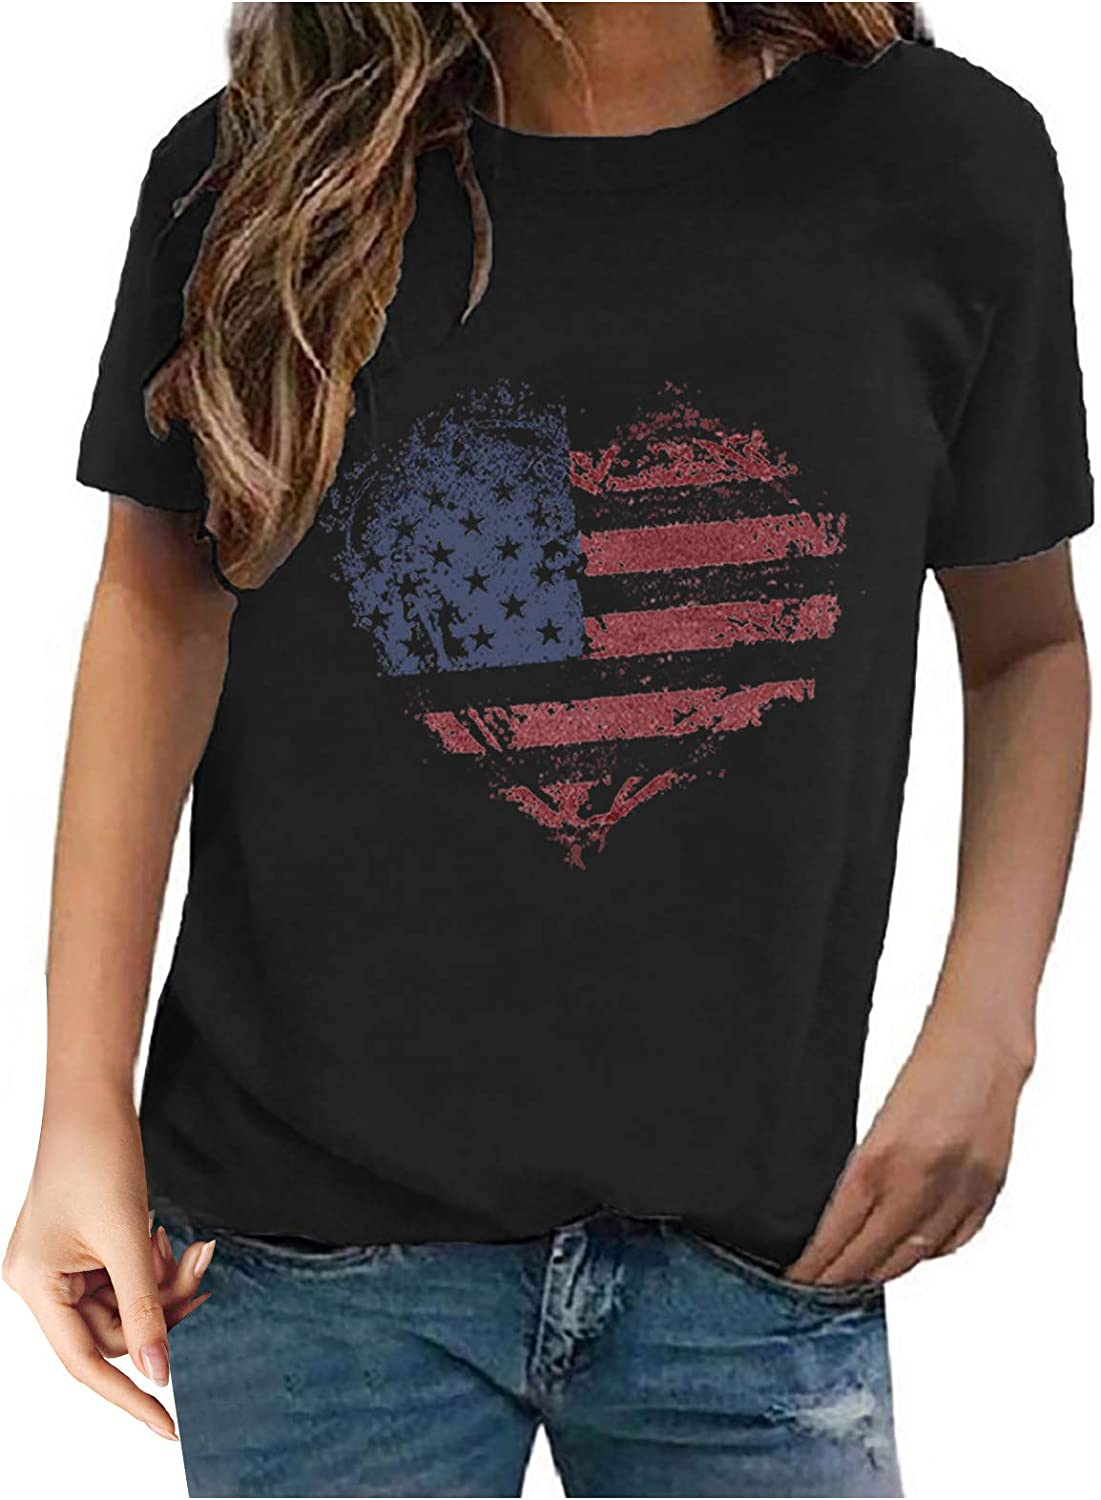 Sayhi Women Independence Day Shirts Casual Shirts Vest Fashion Print Short Sleeve Round Neck T-Shirt Top